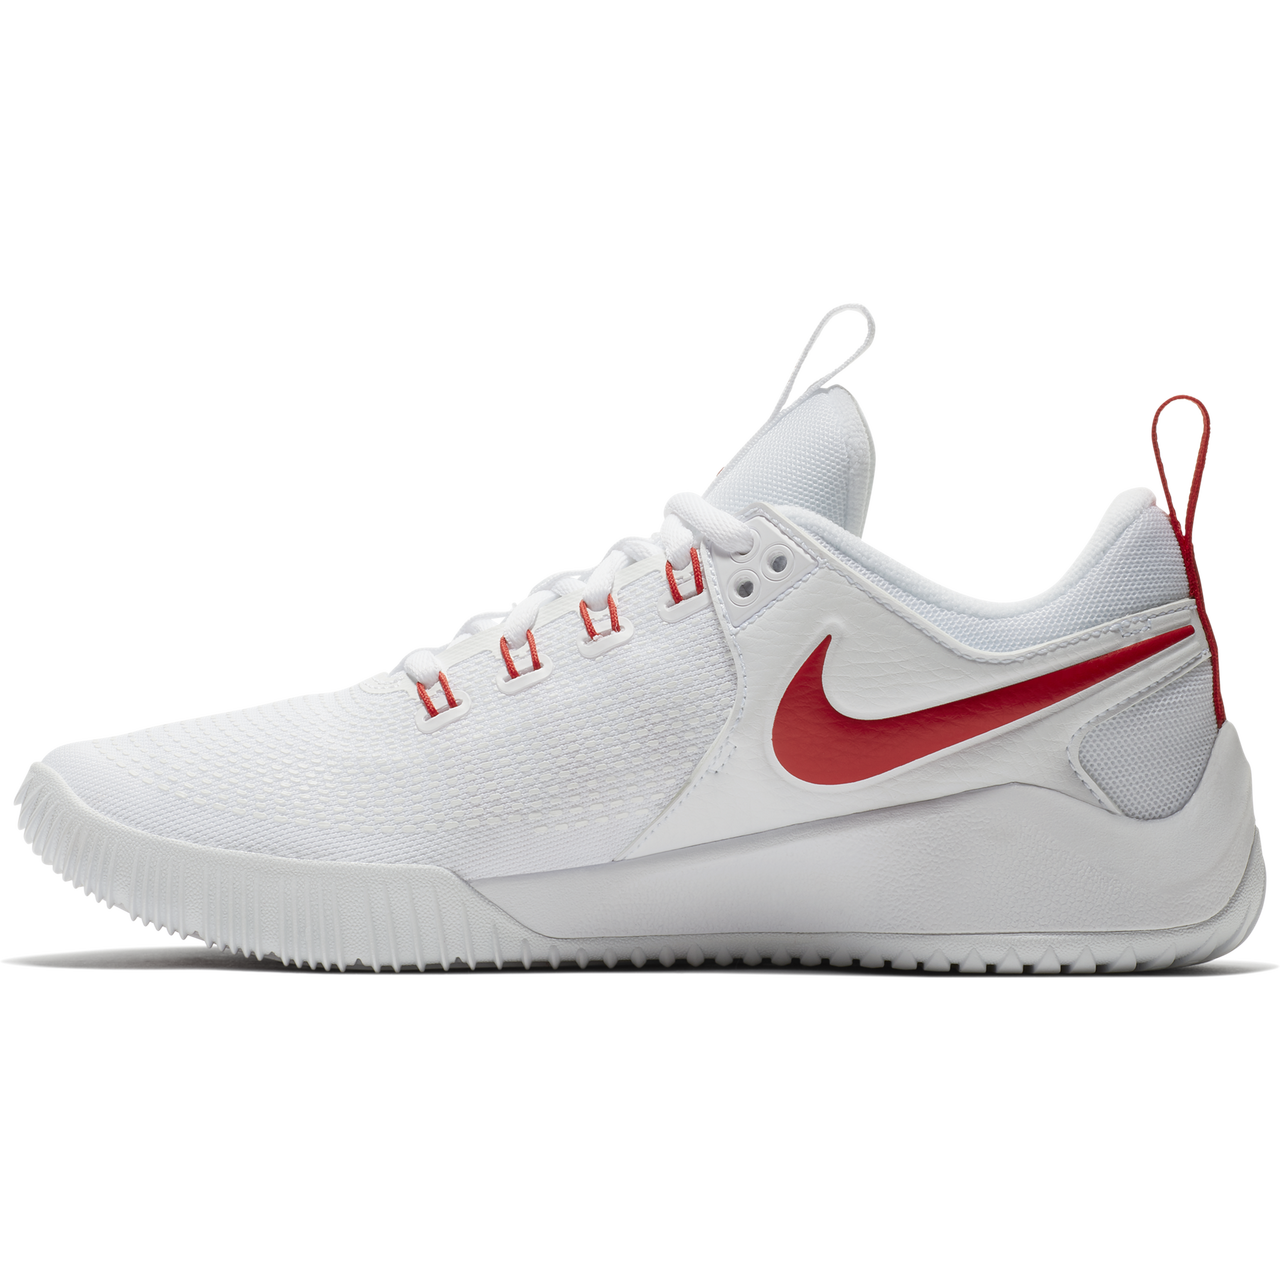 b10be1da9a13a3 Nike Zoom HyperAce 2 Volleyball Shoe - White University Red